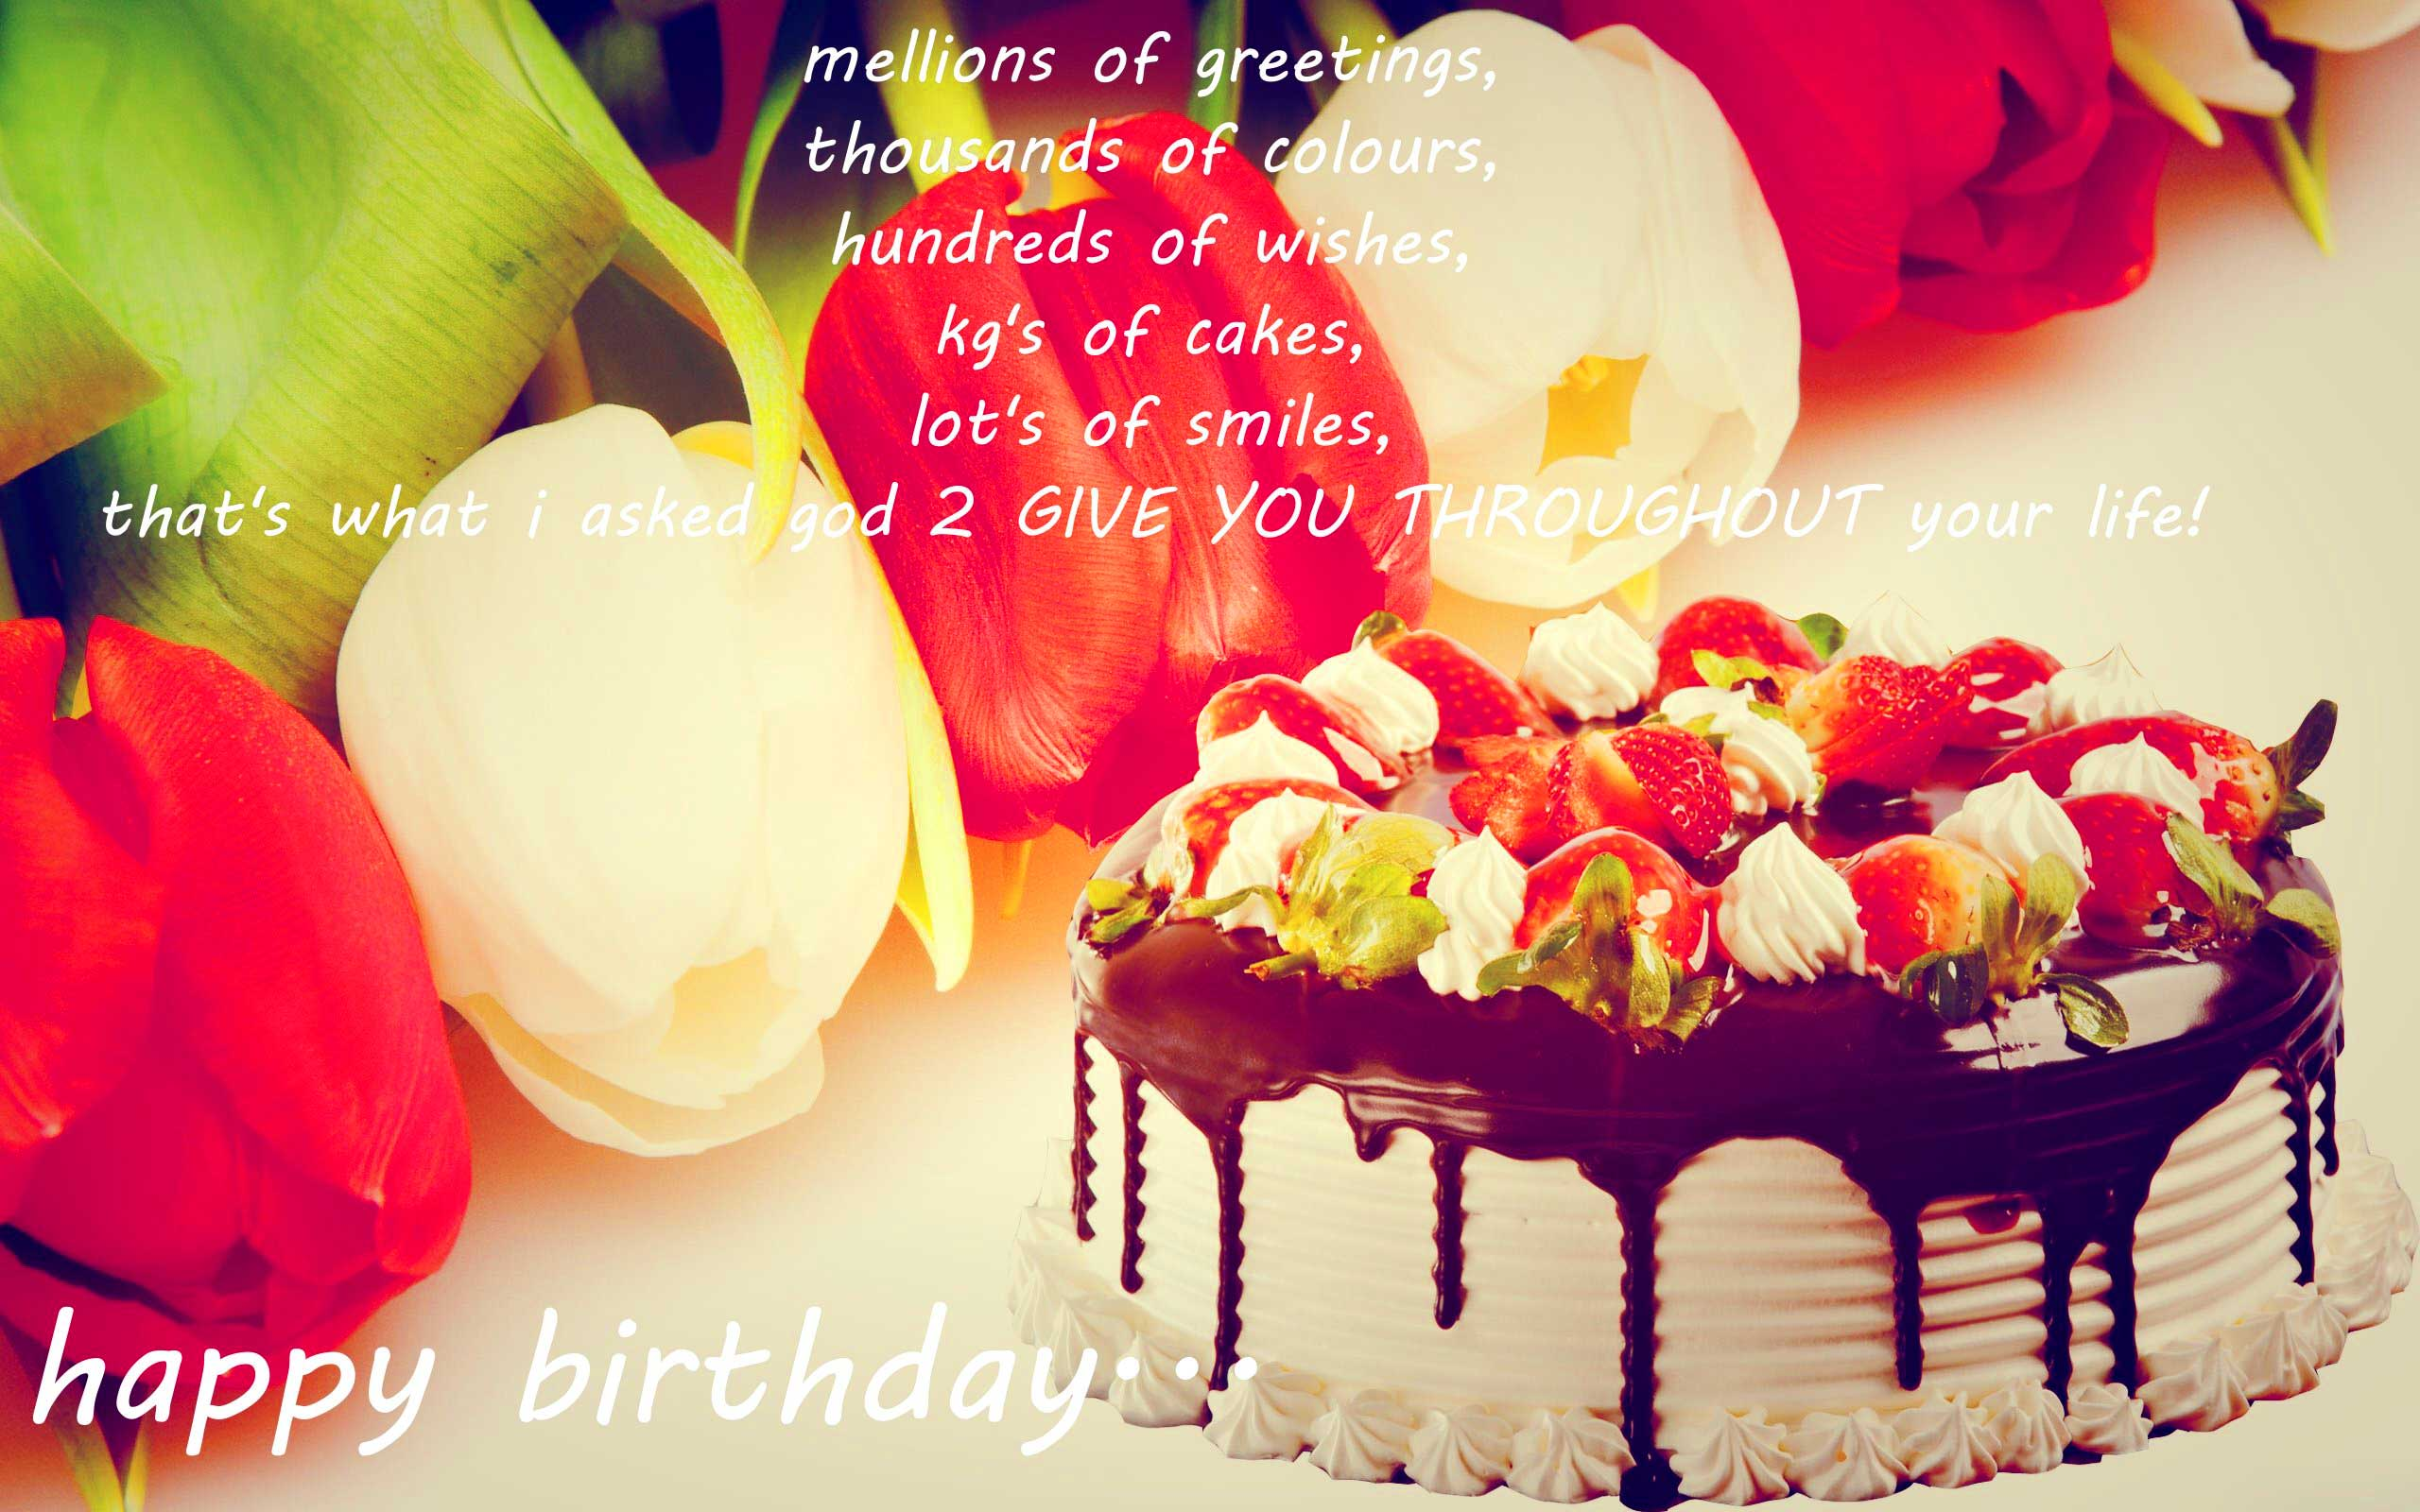 birthday wishes wallpaper download ; birthday-wishes-cake-name